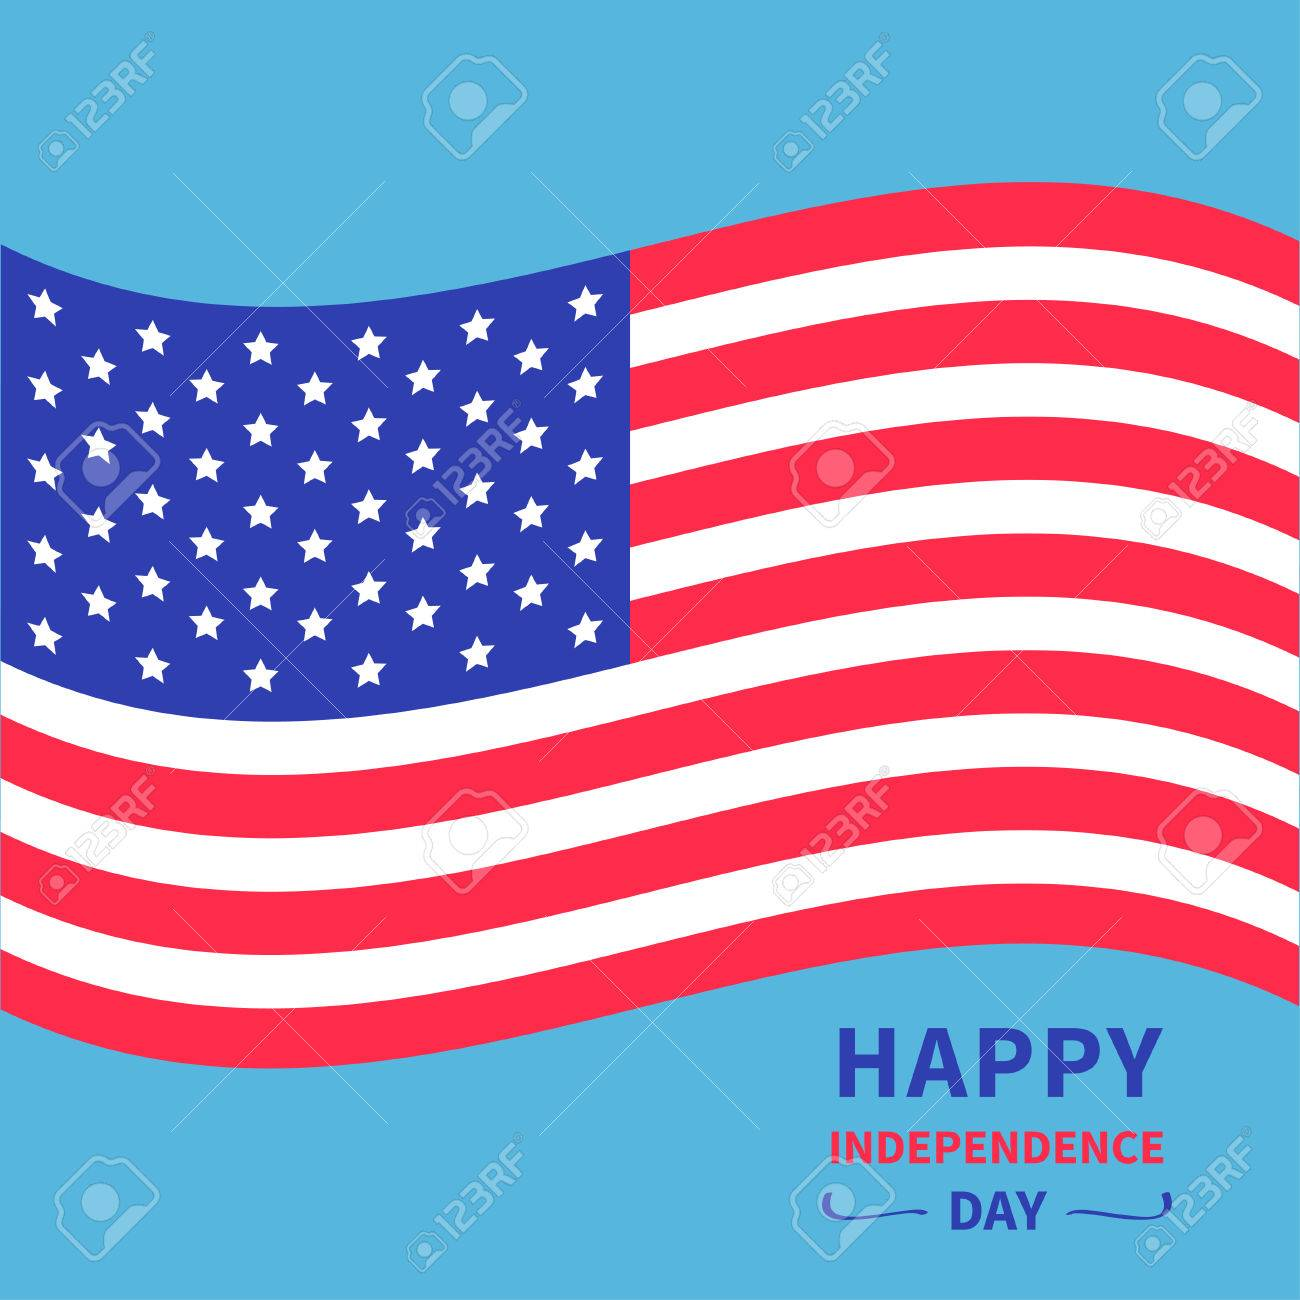 Buy American Happy independence day pictures trends